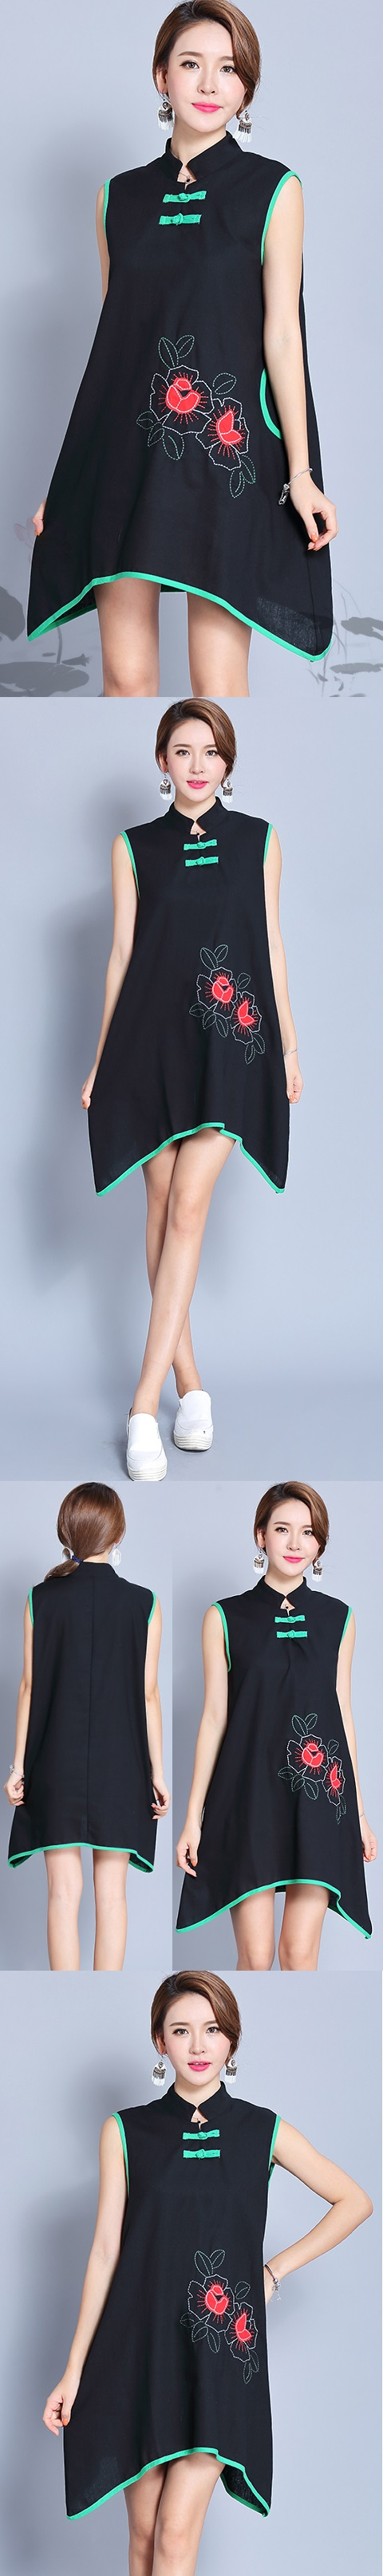 Ethnic Sleeveless Arch-bottom-hem Dress (RM)